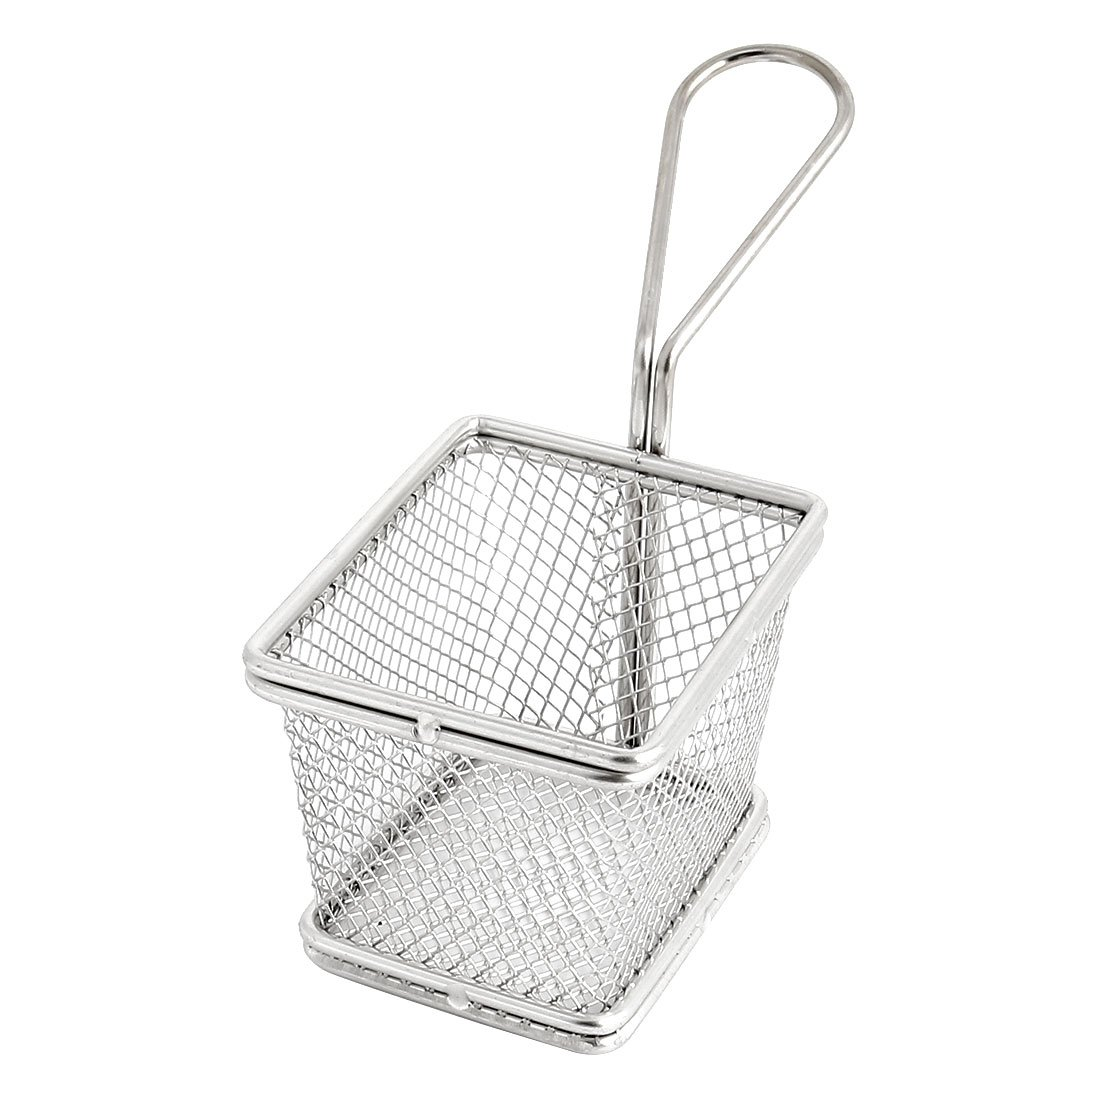 uxcell Stainless Steel Coarse Mesh Culinary Oil Sieve Strainers French Chips Fry Basket